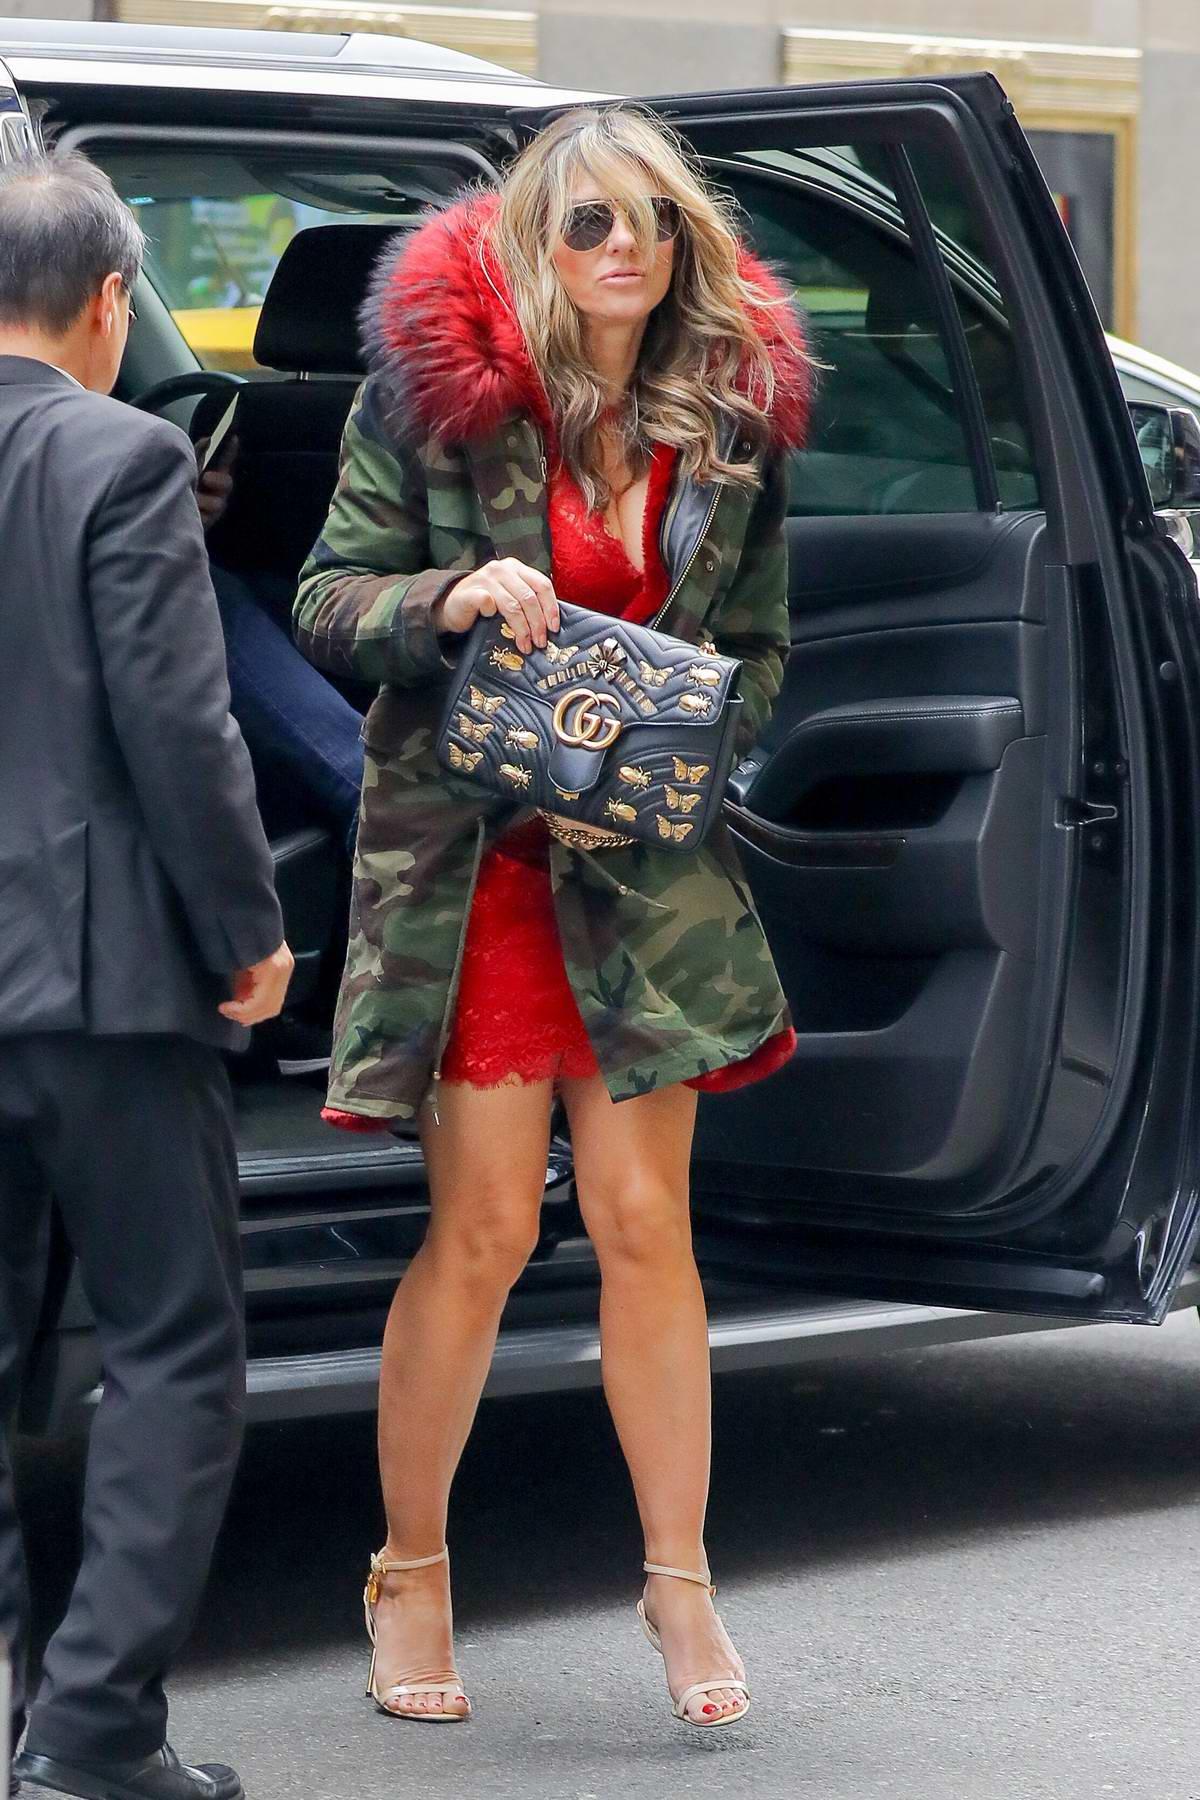 Elizabeth Hurley steps out in a short red dress with fur trimmed camo jacket in New York City